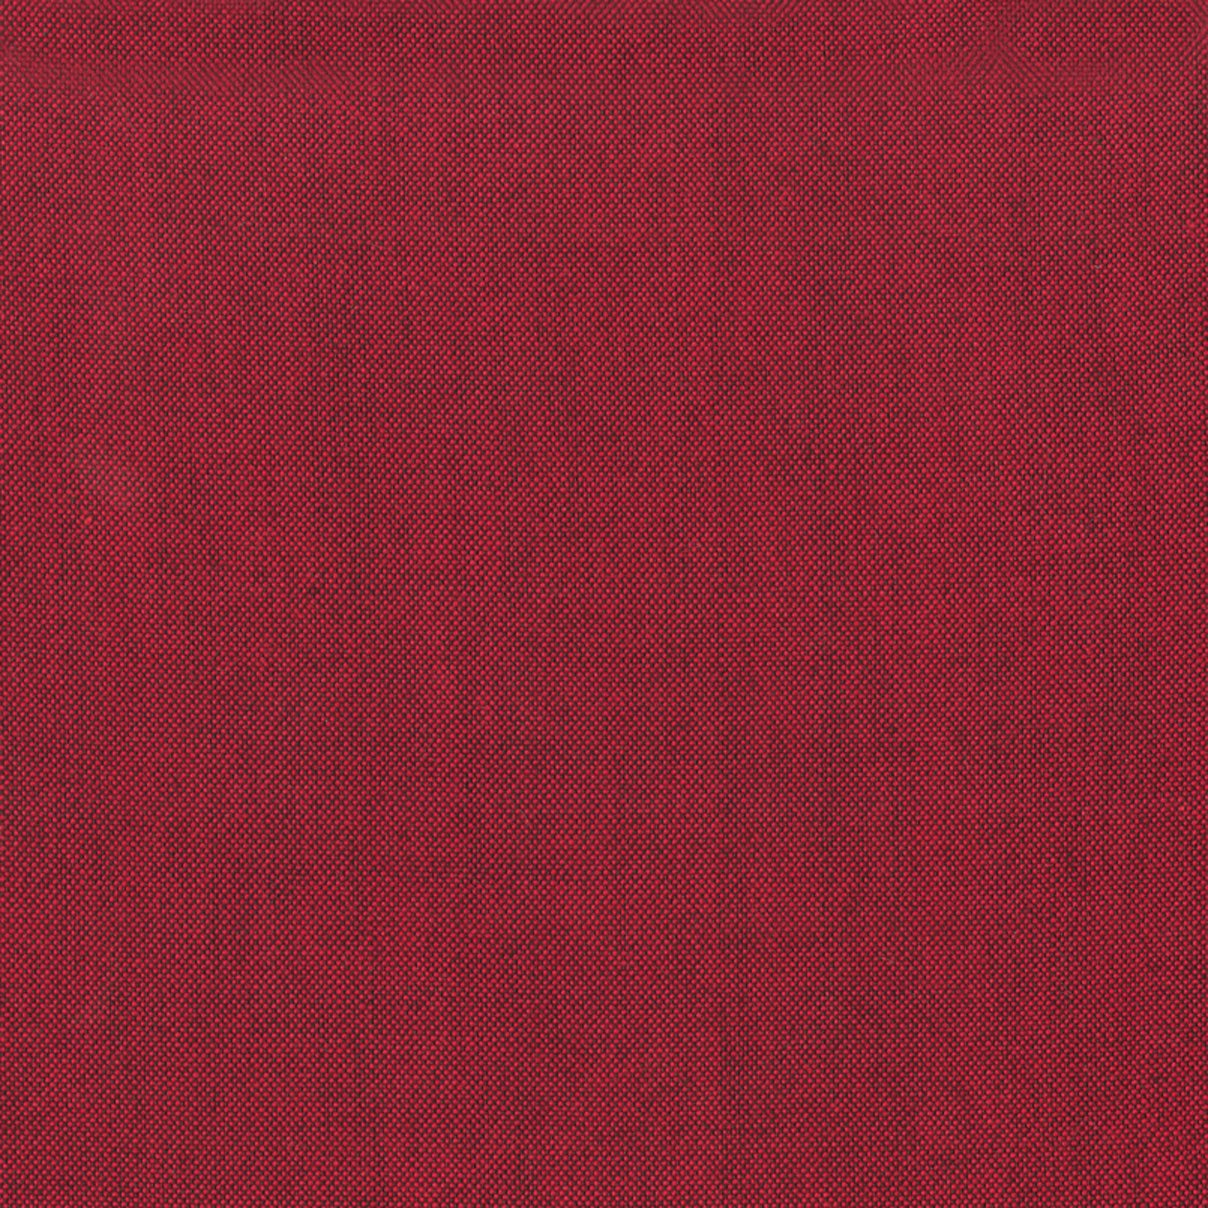 Windham Fabrics Artisan Solid (Crimson/Brown)